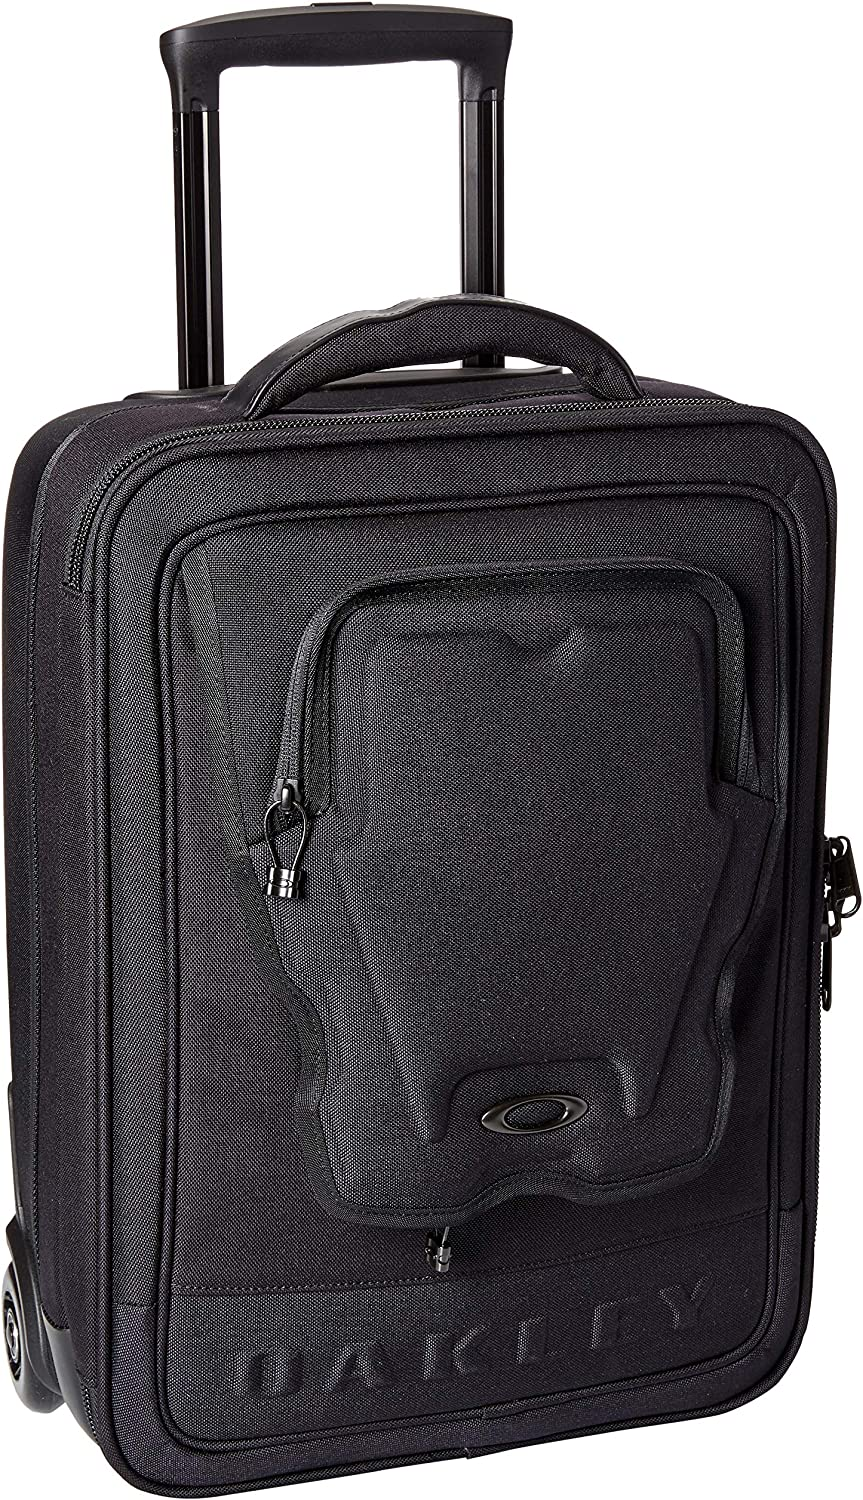 Oakley Mens Men's Icon Cabin Trolley